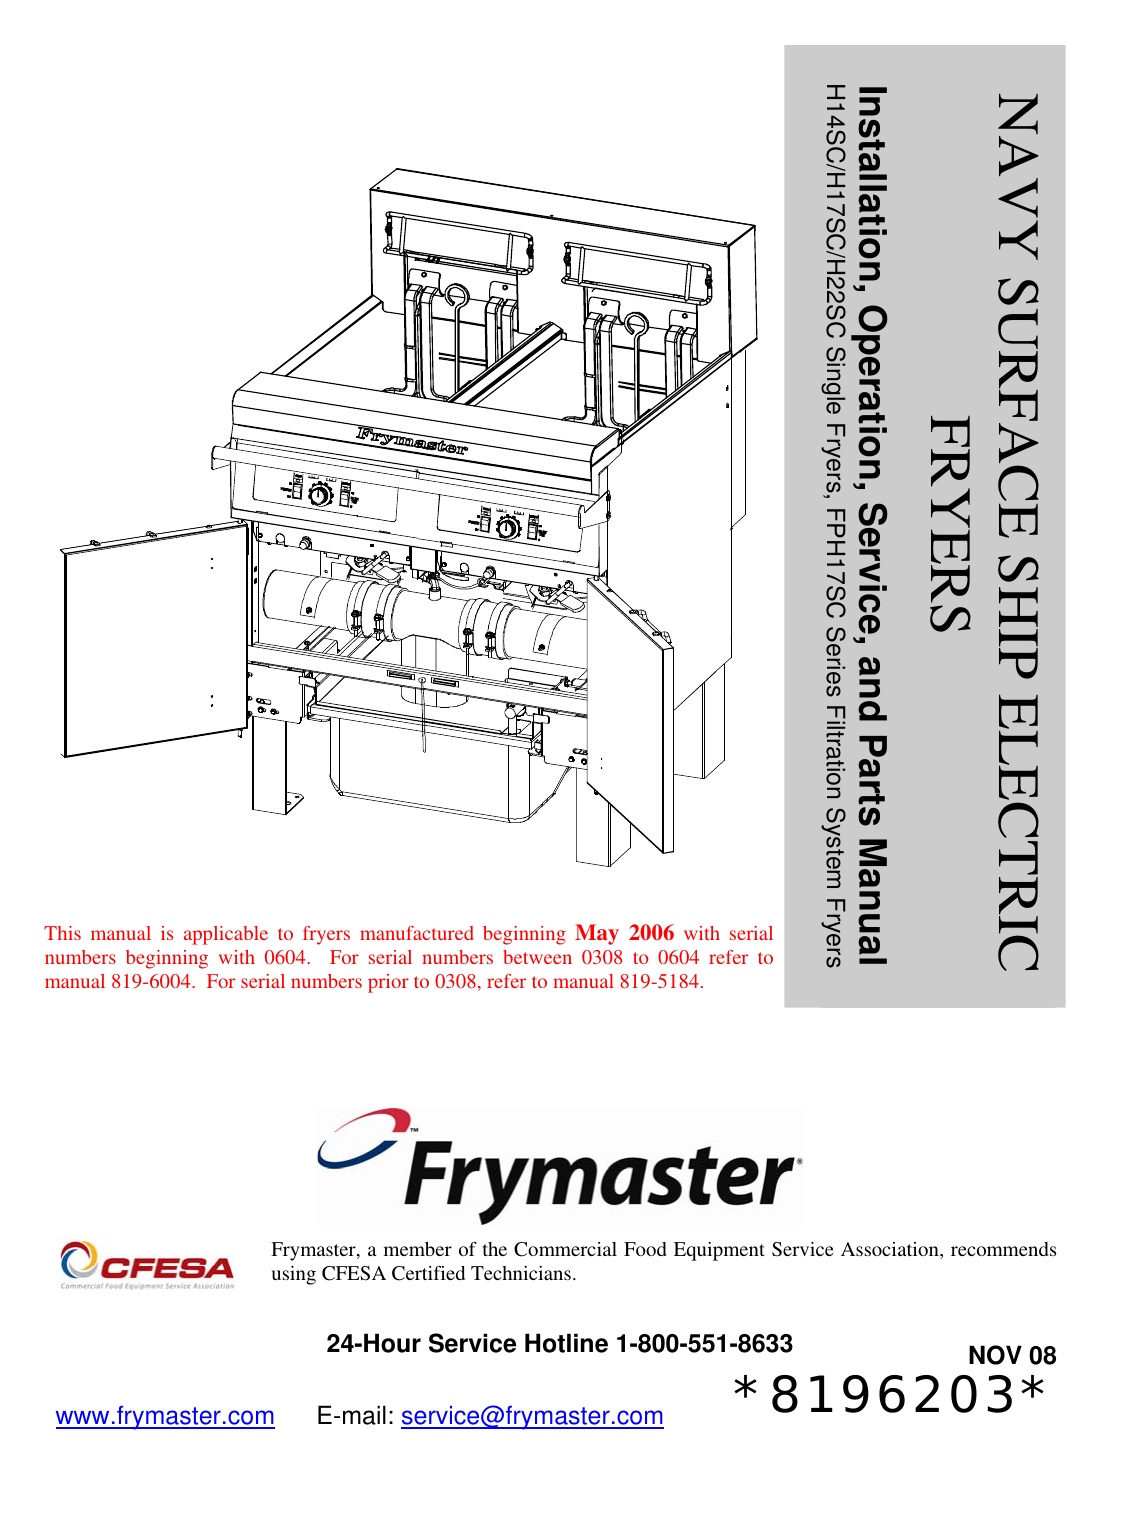 frymaster 8196203 users manual navy surface ship electric iosp front cover